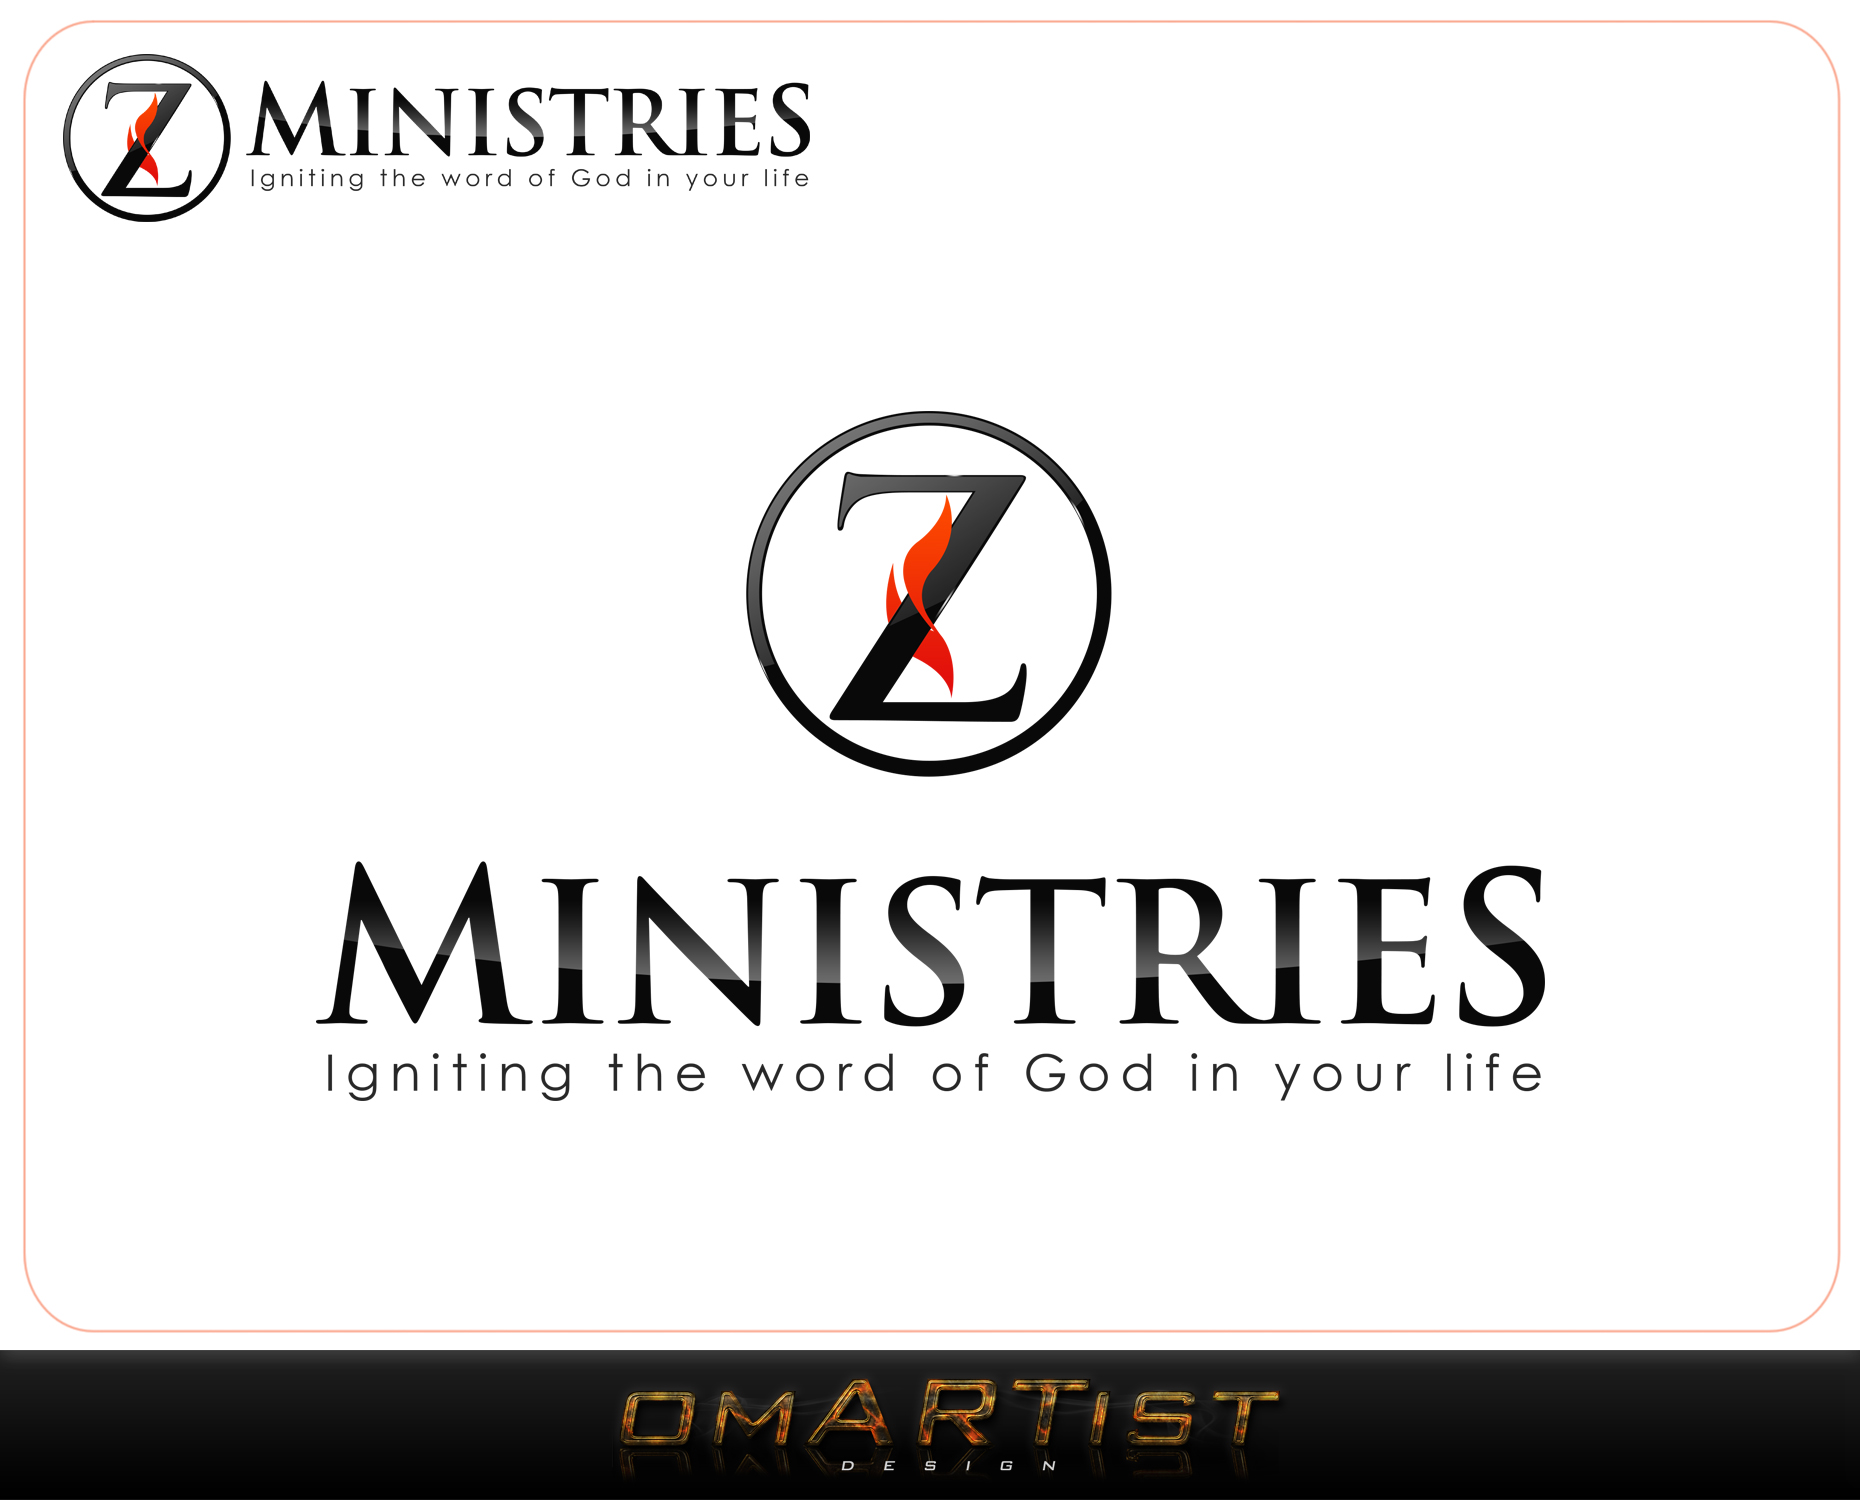 Logo Design by omARTist - Entry No. 161 in the Logo Design Contest Artistic Logo Design for Z Ministries.